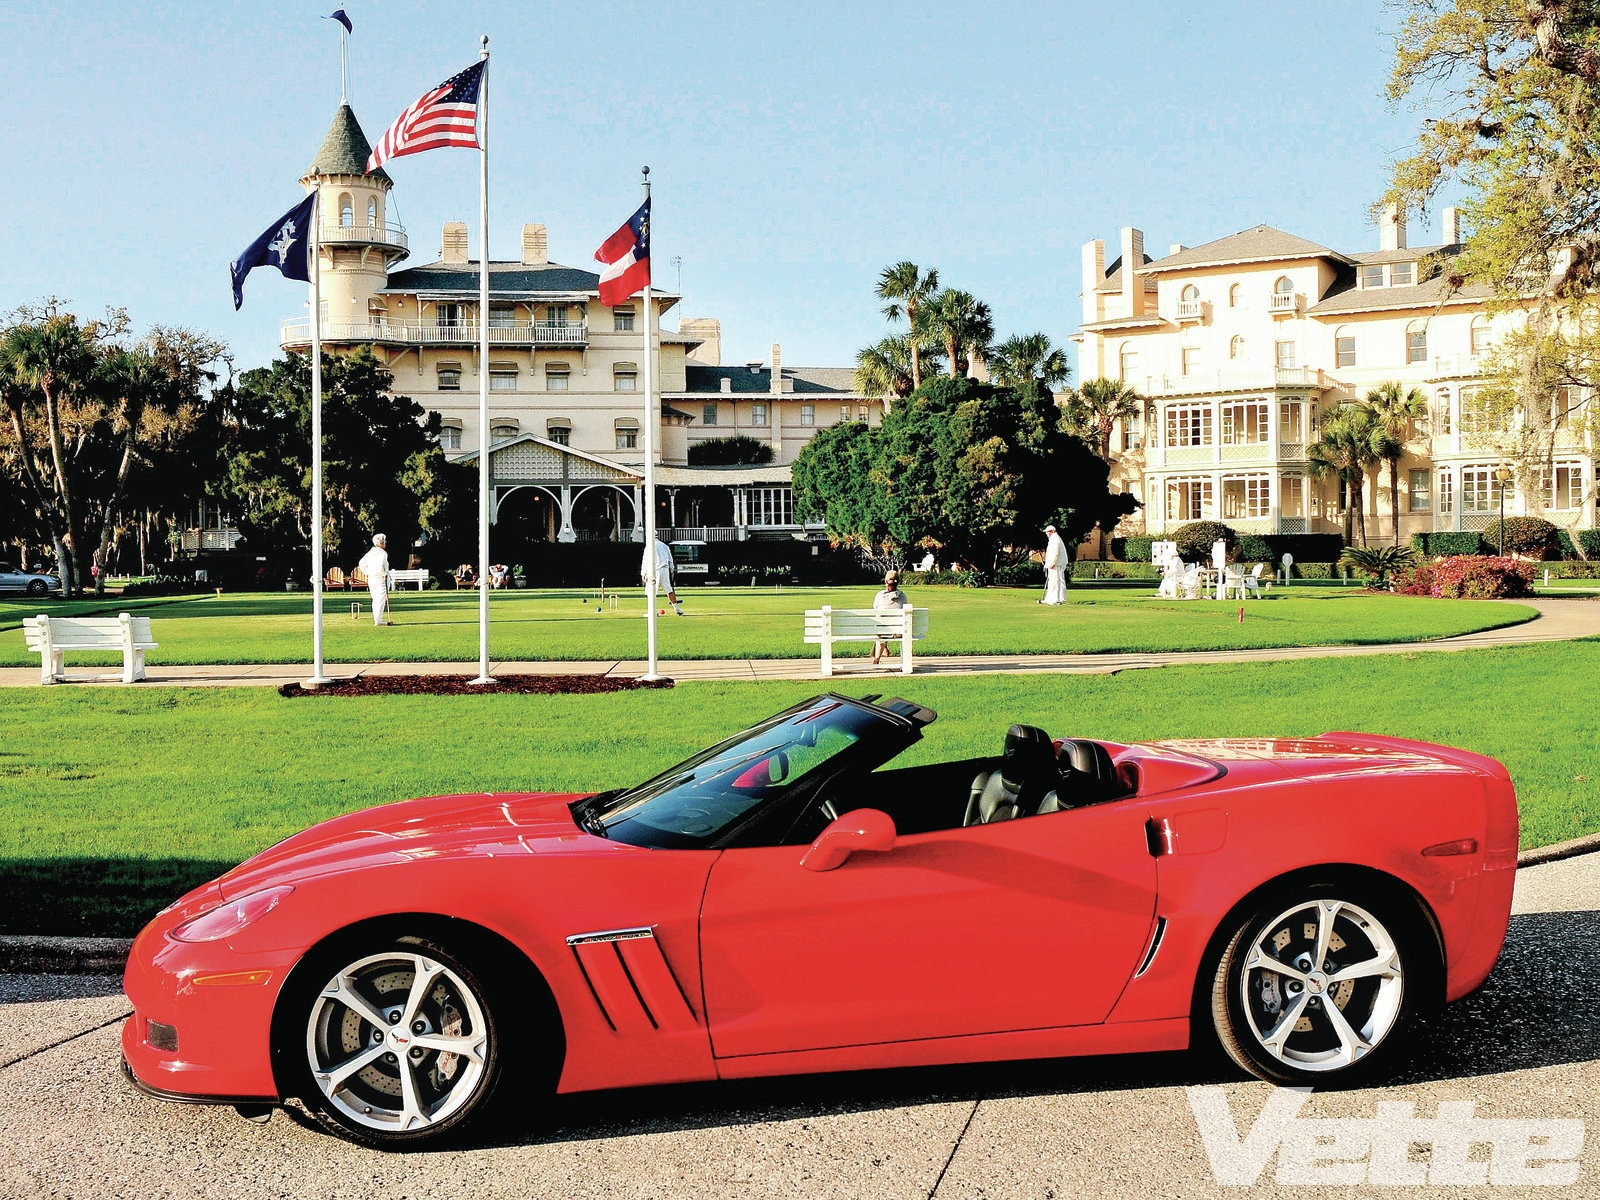 2012 Chevrolet Corvette Grand Sport Road Trip - Coastal Treasures